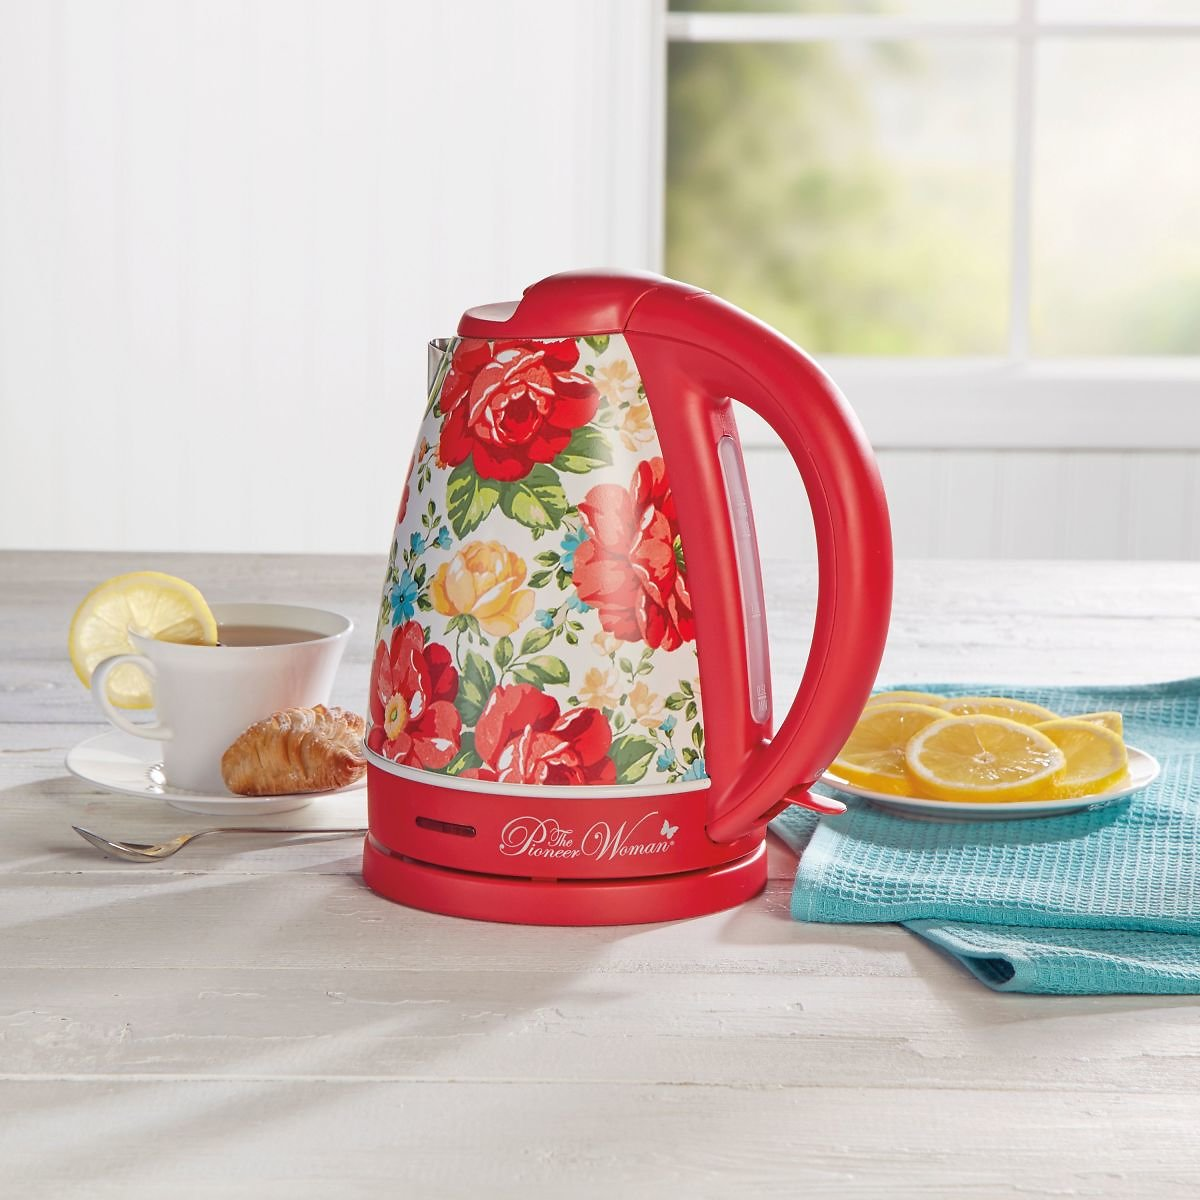 The Pioneer Woman 1.7-L Electric Kettle